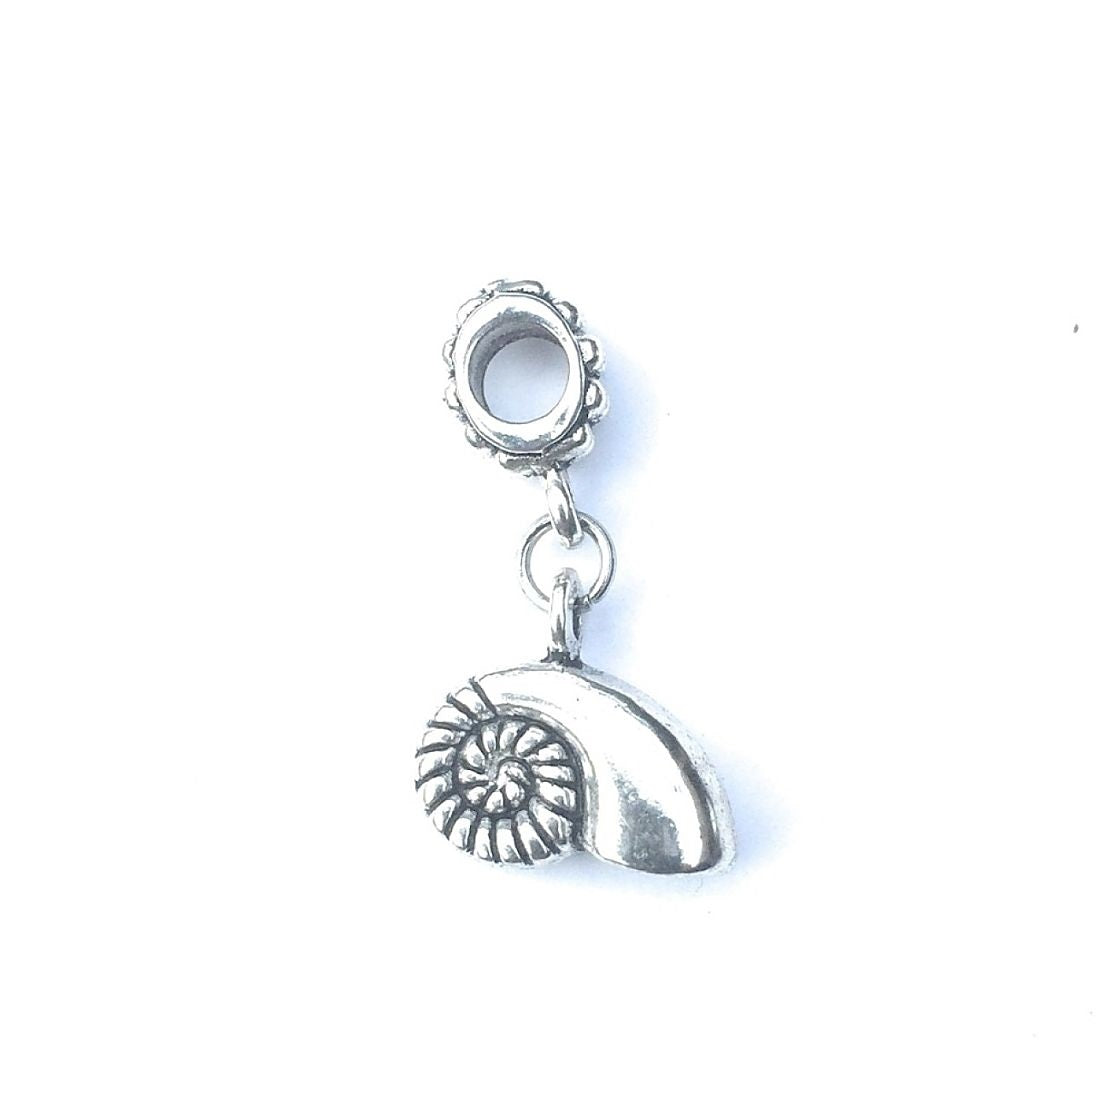 Handcrafted Silver Conch Charm Bead for Bracelet.